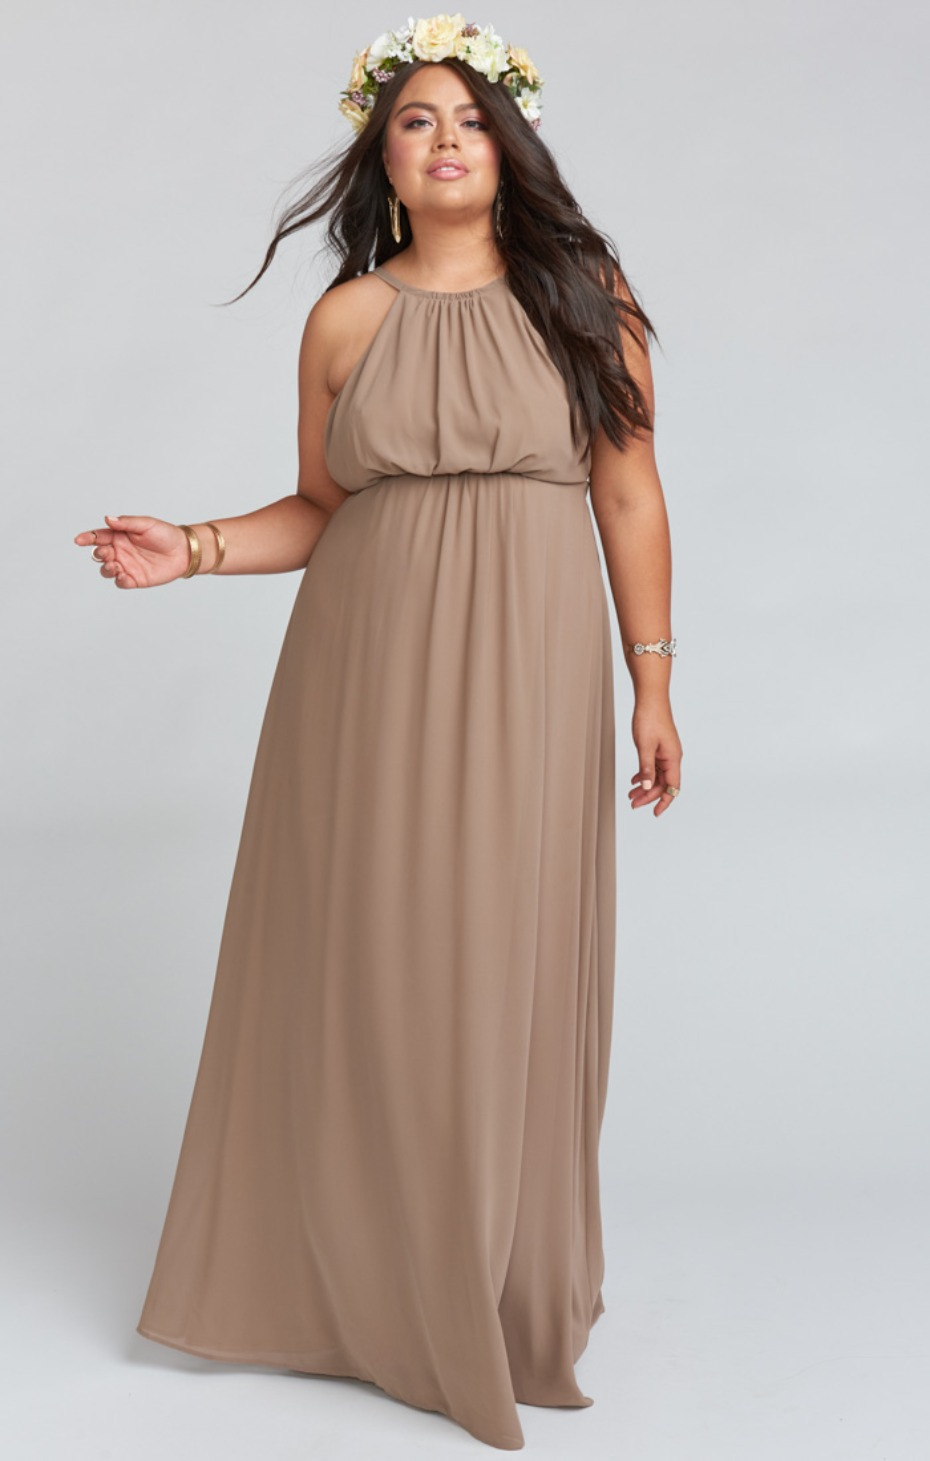 c0237c6f0b53a Show Me Your Mumu Bridesmaid Dresses XXS-3XL